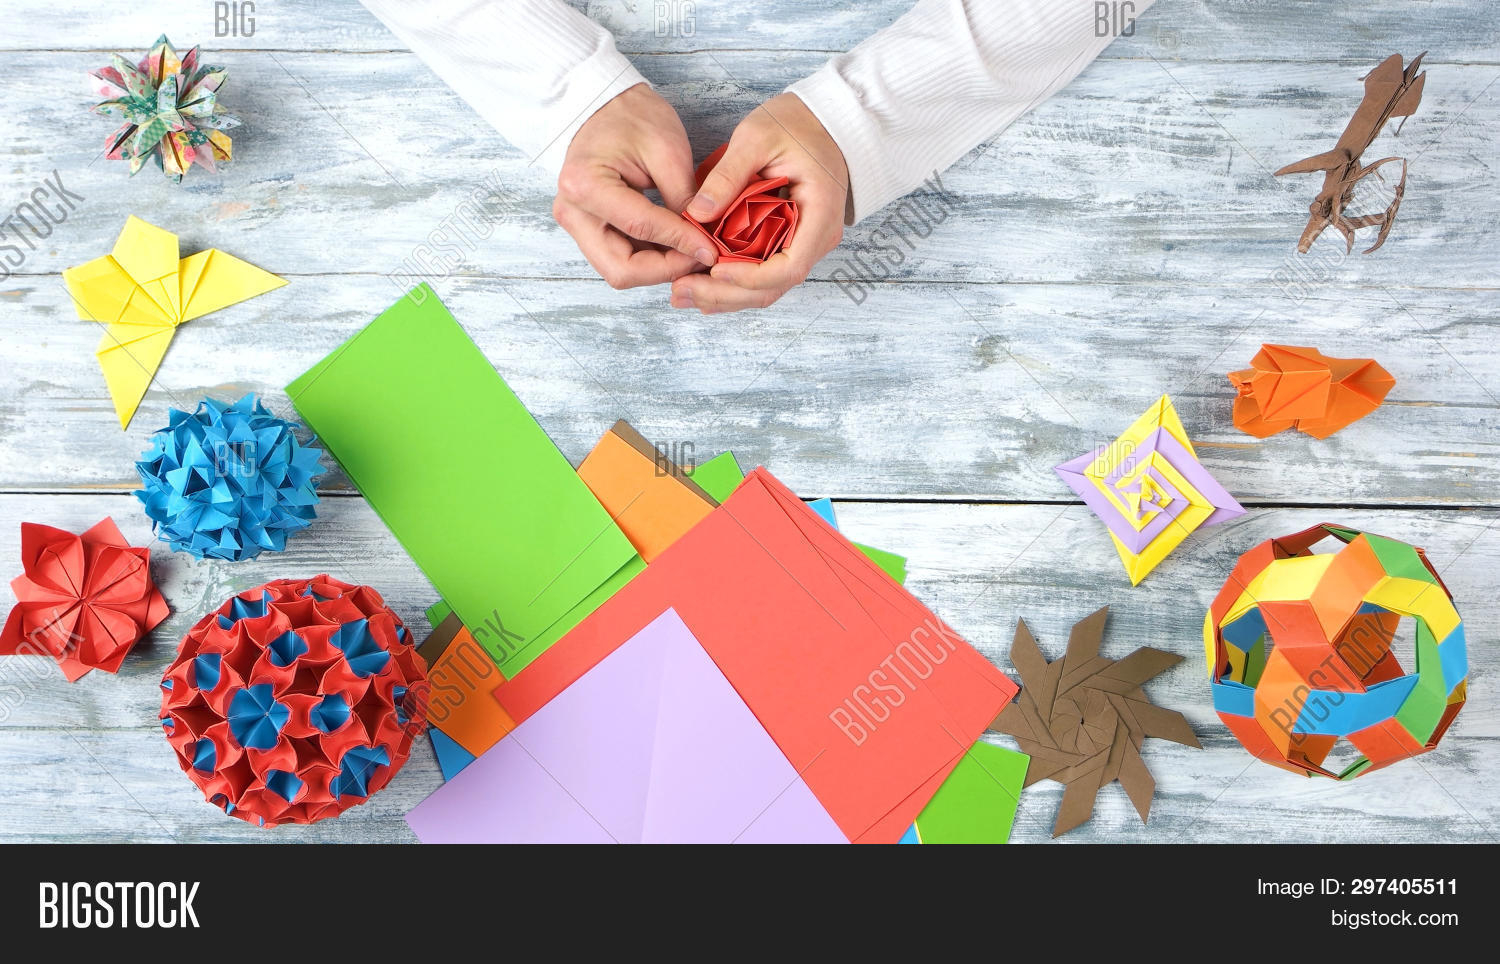 How To Make An Origami Tulip Origami Tulip Man Image Photo Free Trial Bigstock